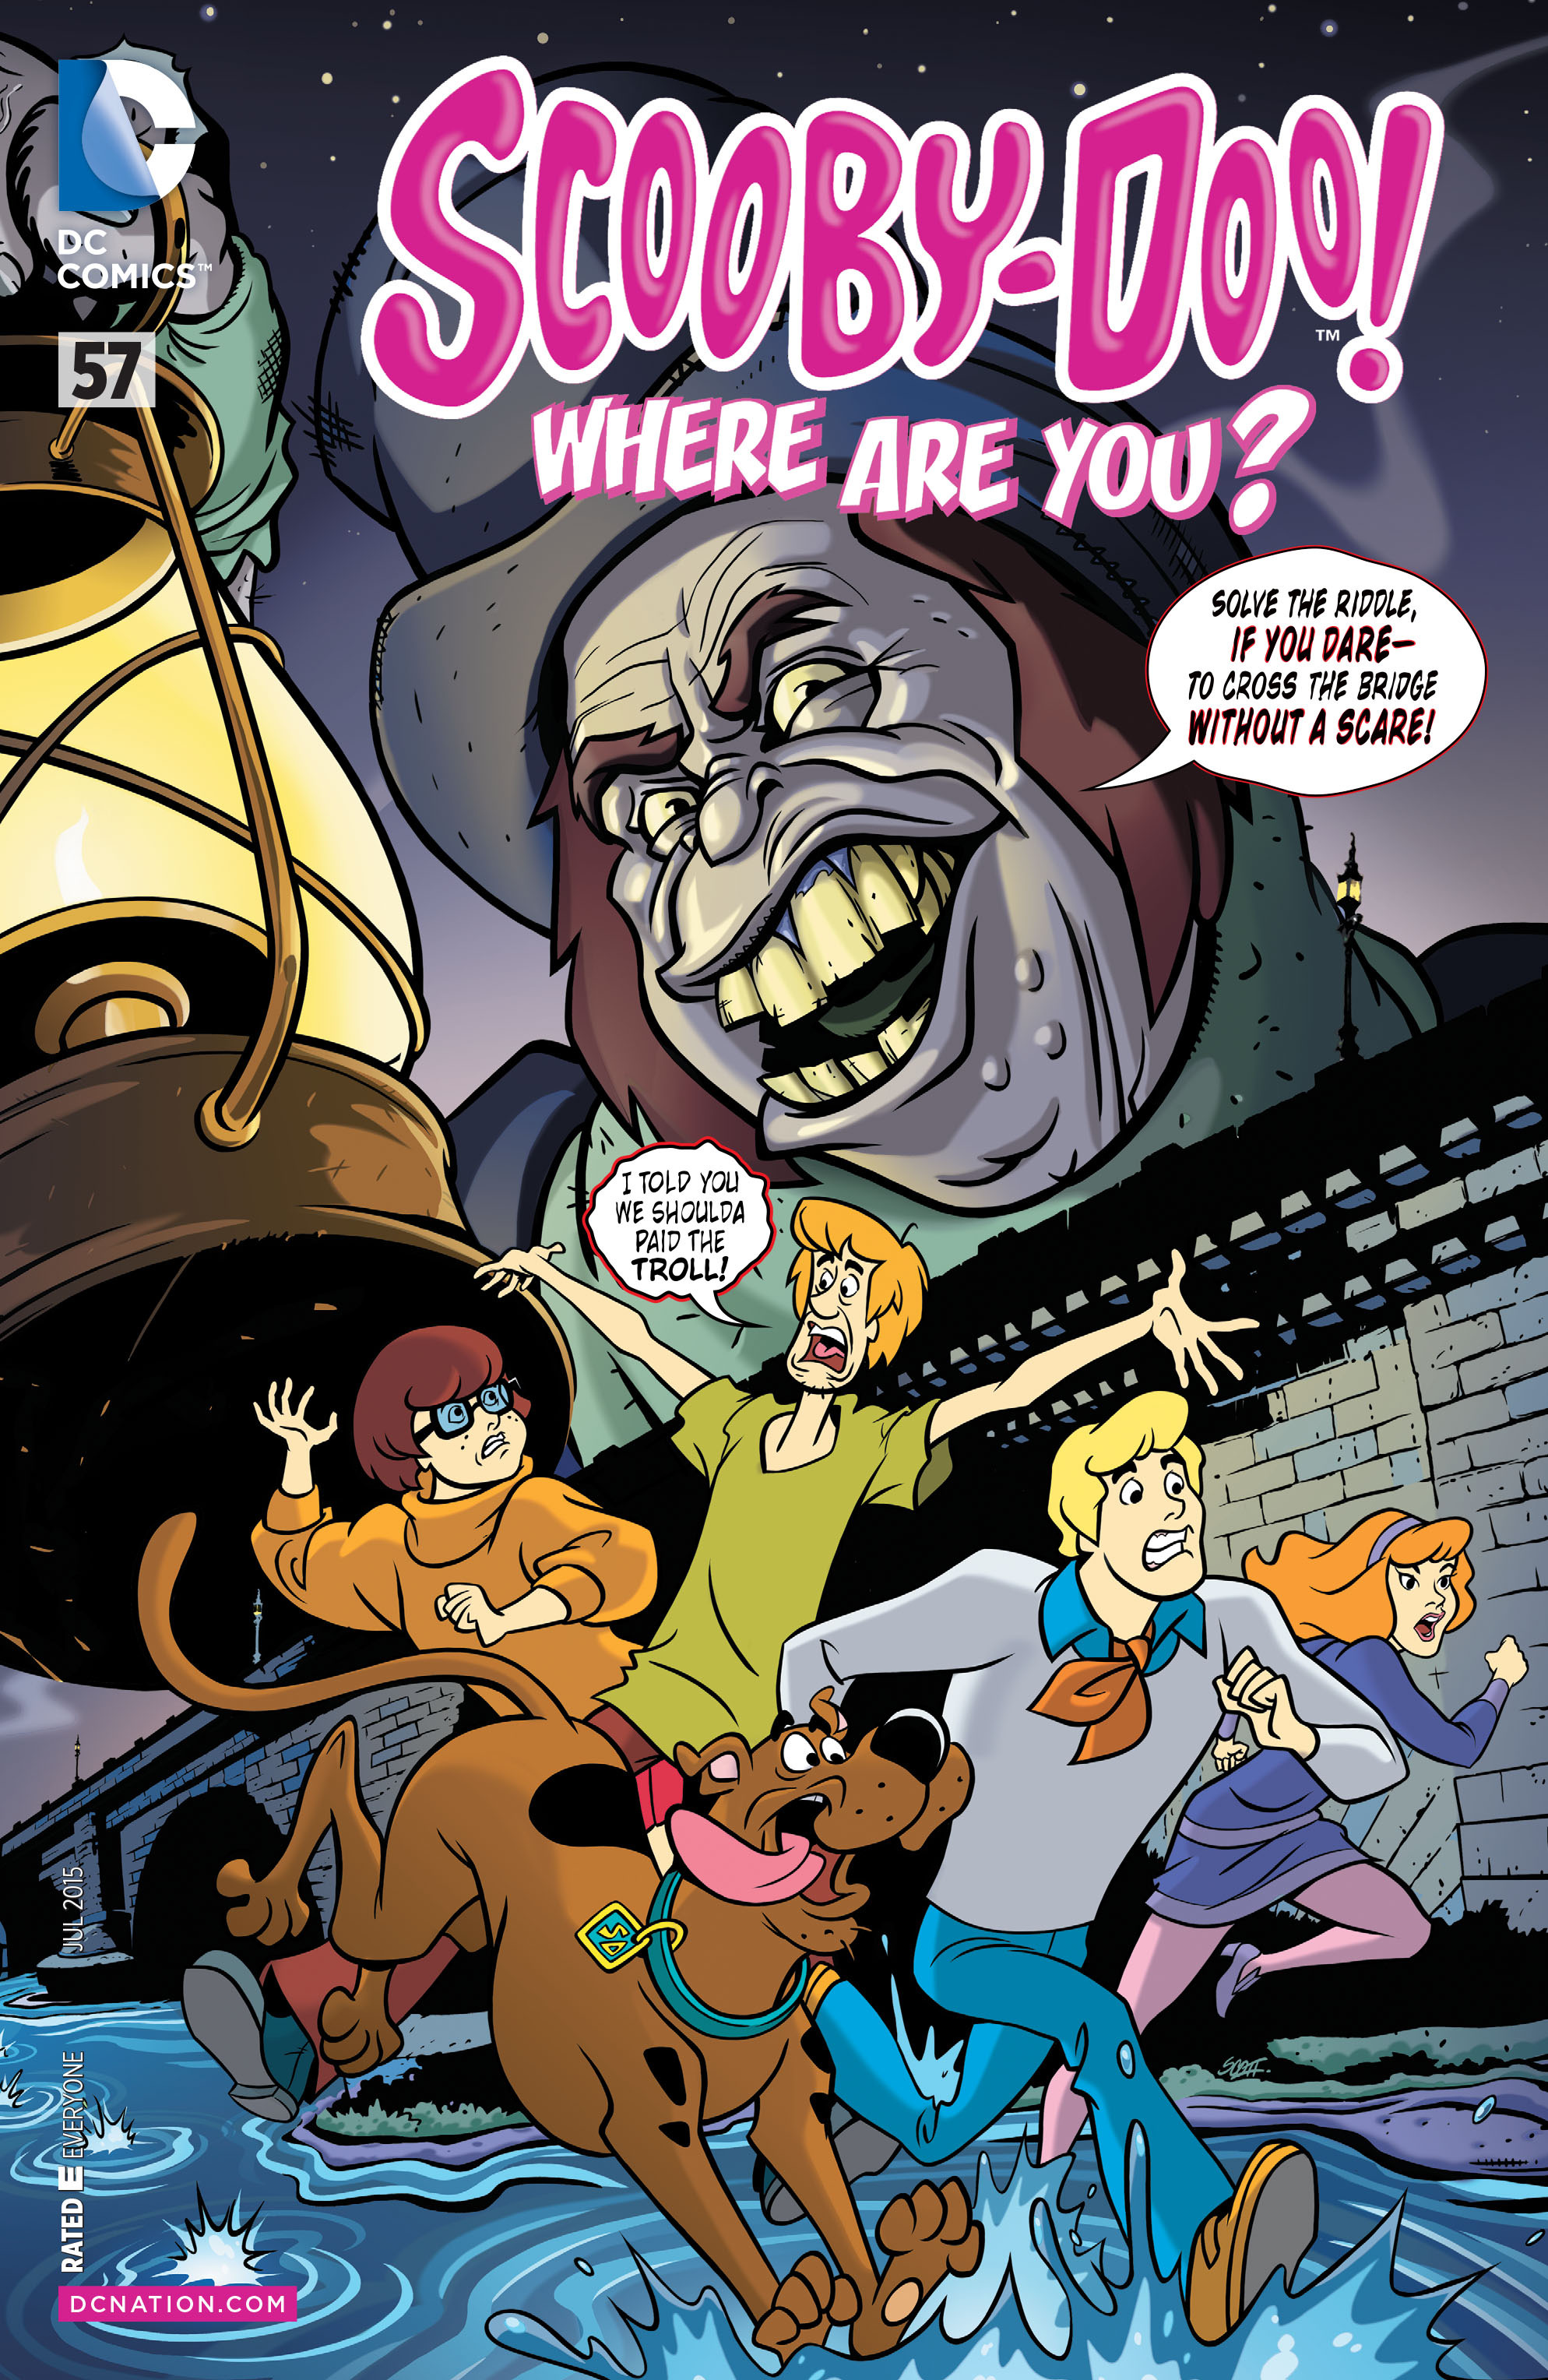 Read online Scooby-Doo: Where Are You? comic -  Issue #57 - 1